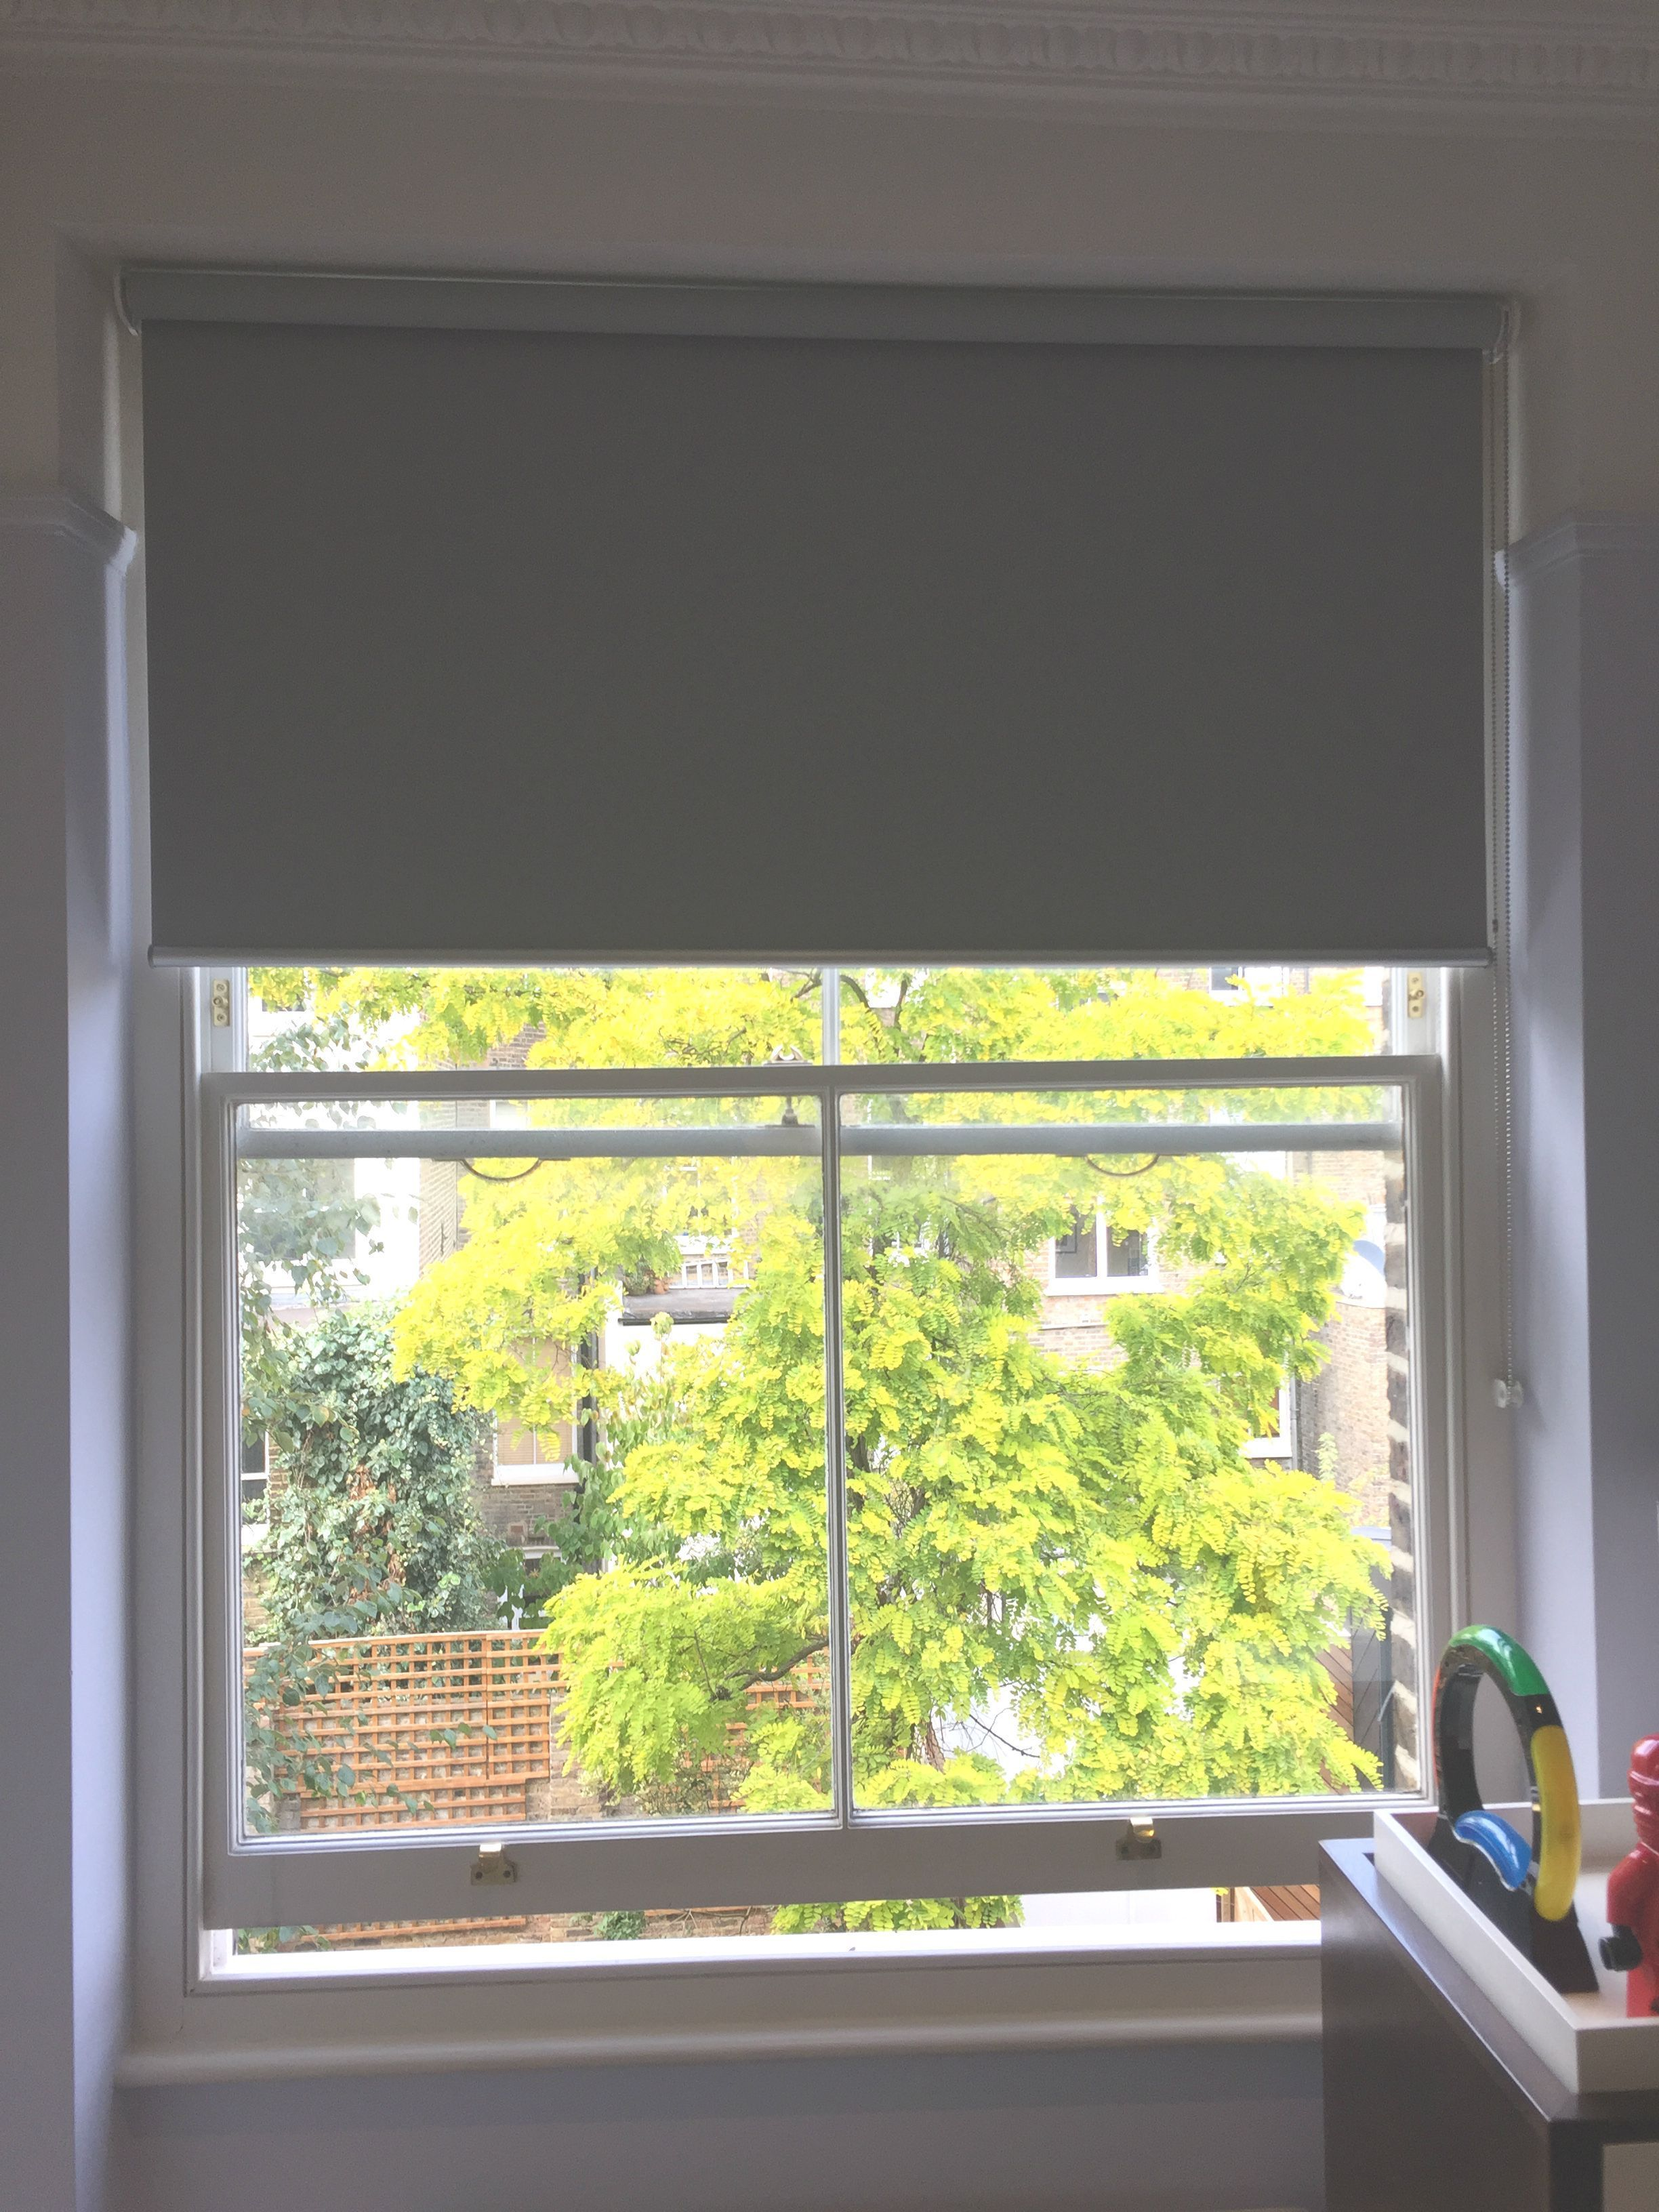 Blackout roller blind fitted to sash window in childrenus bedroom in